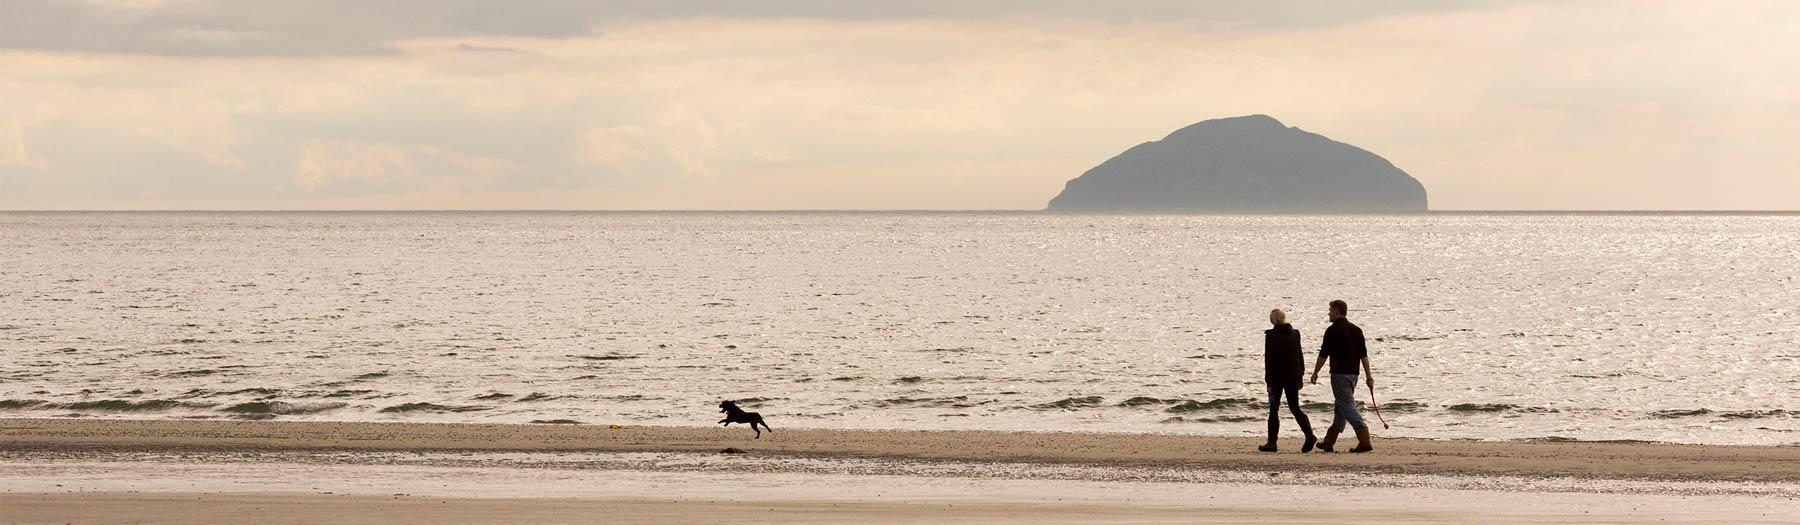 Image: Croy Shore, Culzean Bay. Credit: Image used with permission from VisitScotland and Scottish Viewpoint.